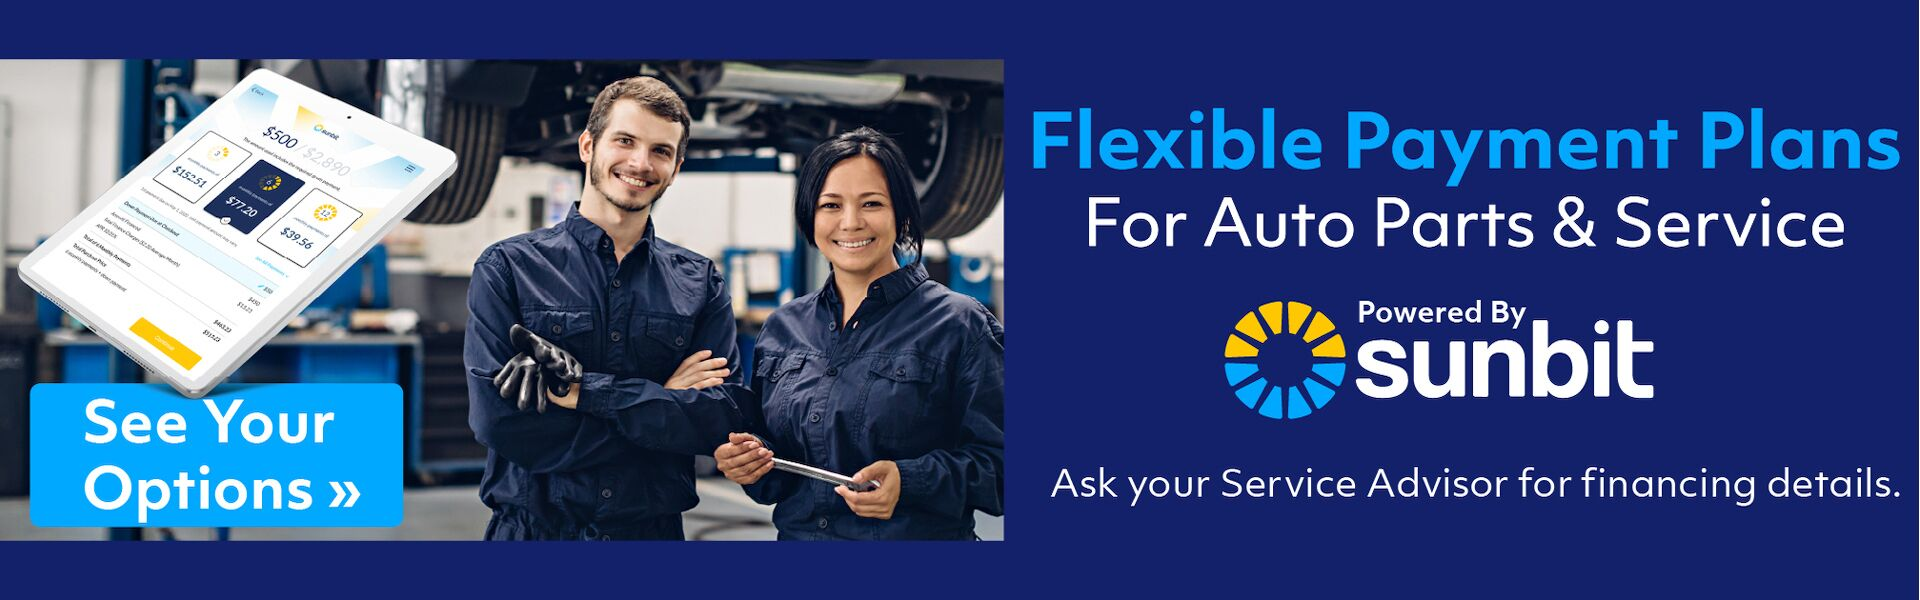 Flexible Payments Plans for Auto Parts & Service